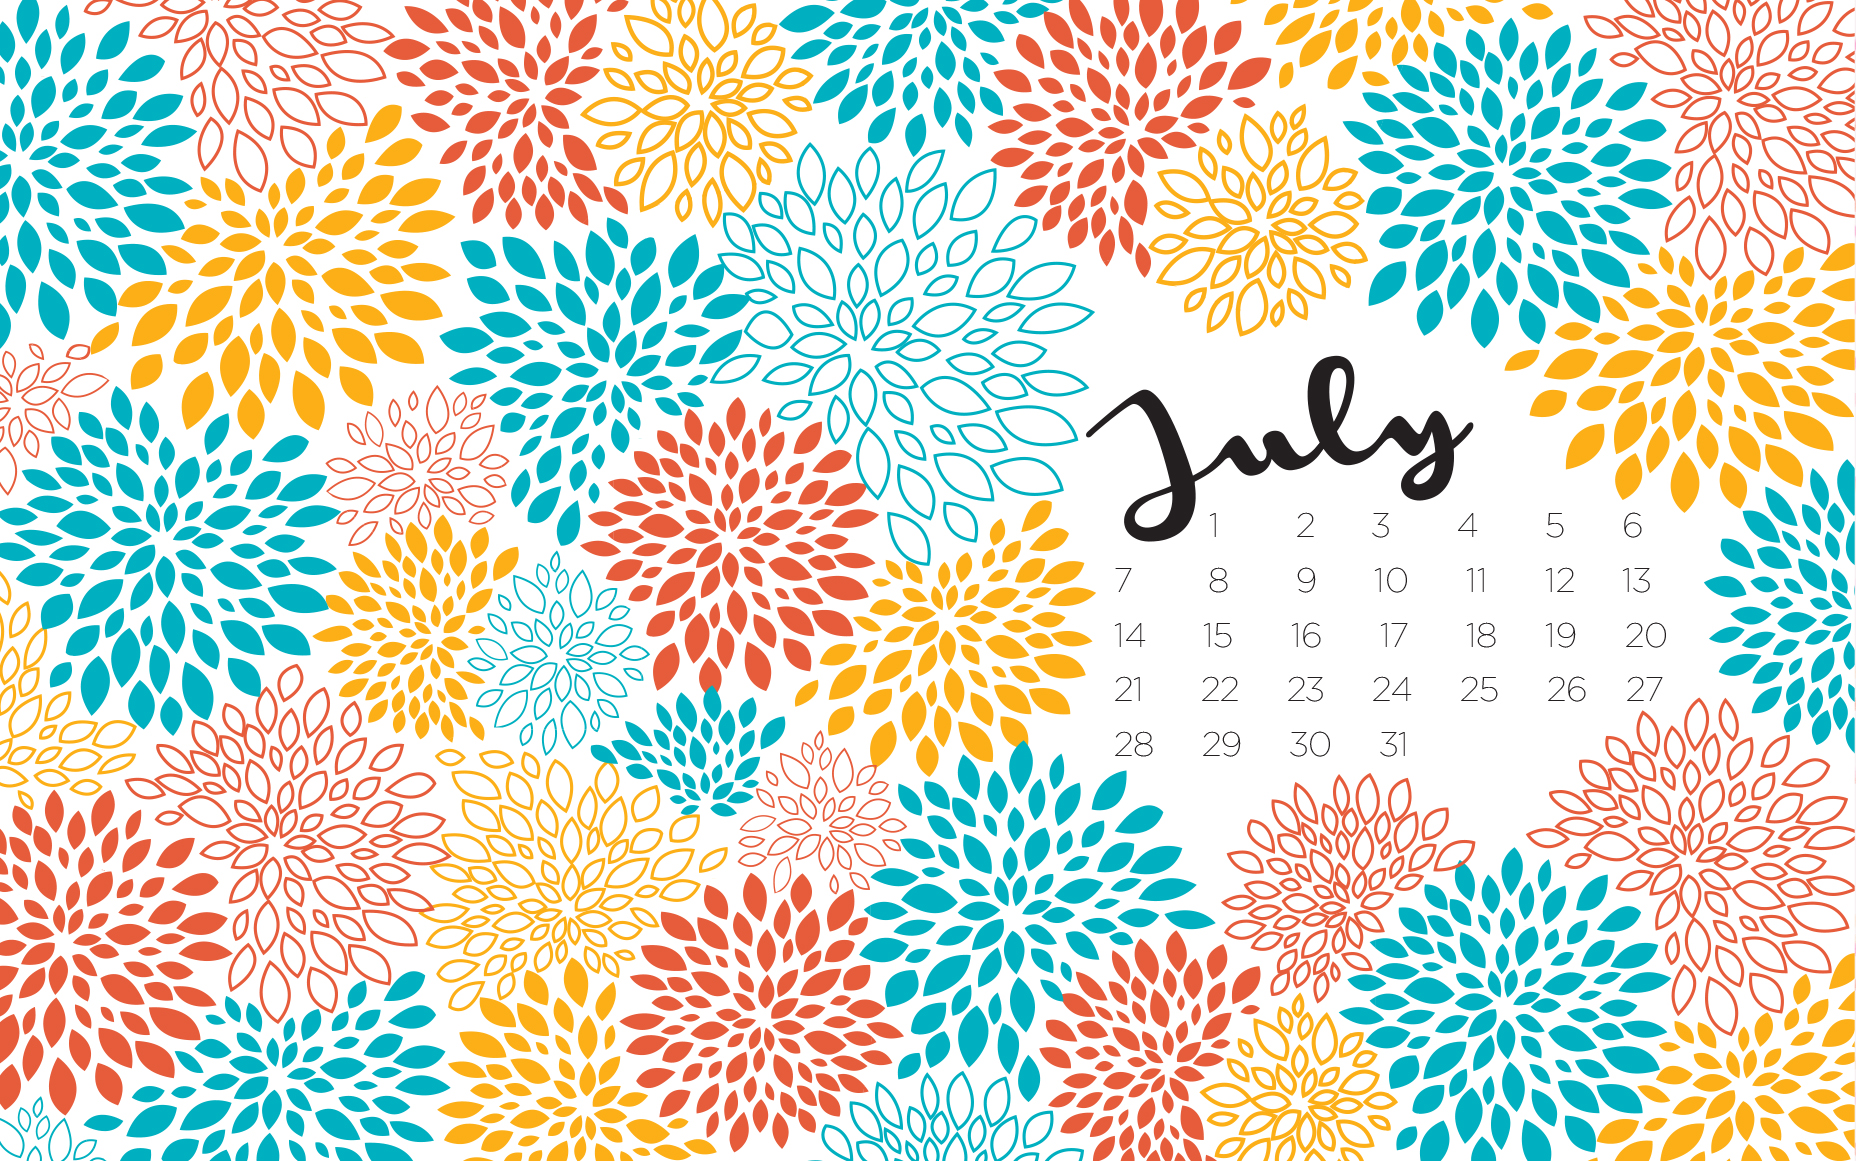 free july wallpaper with calendar